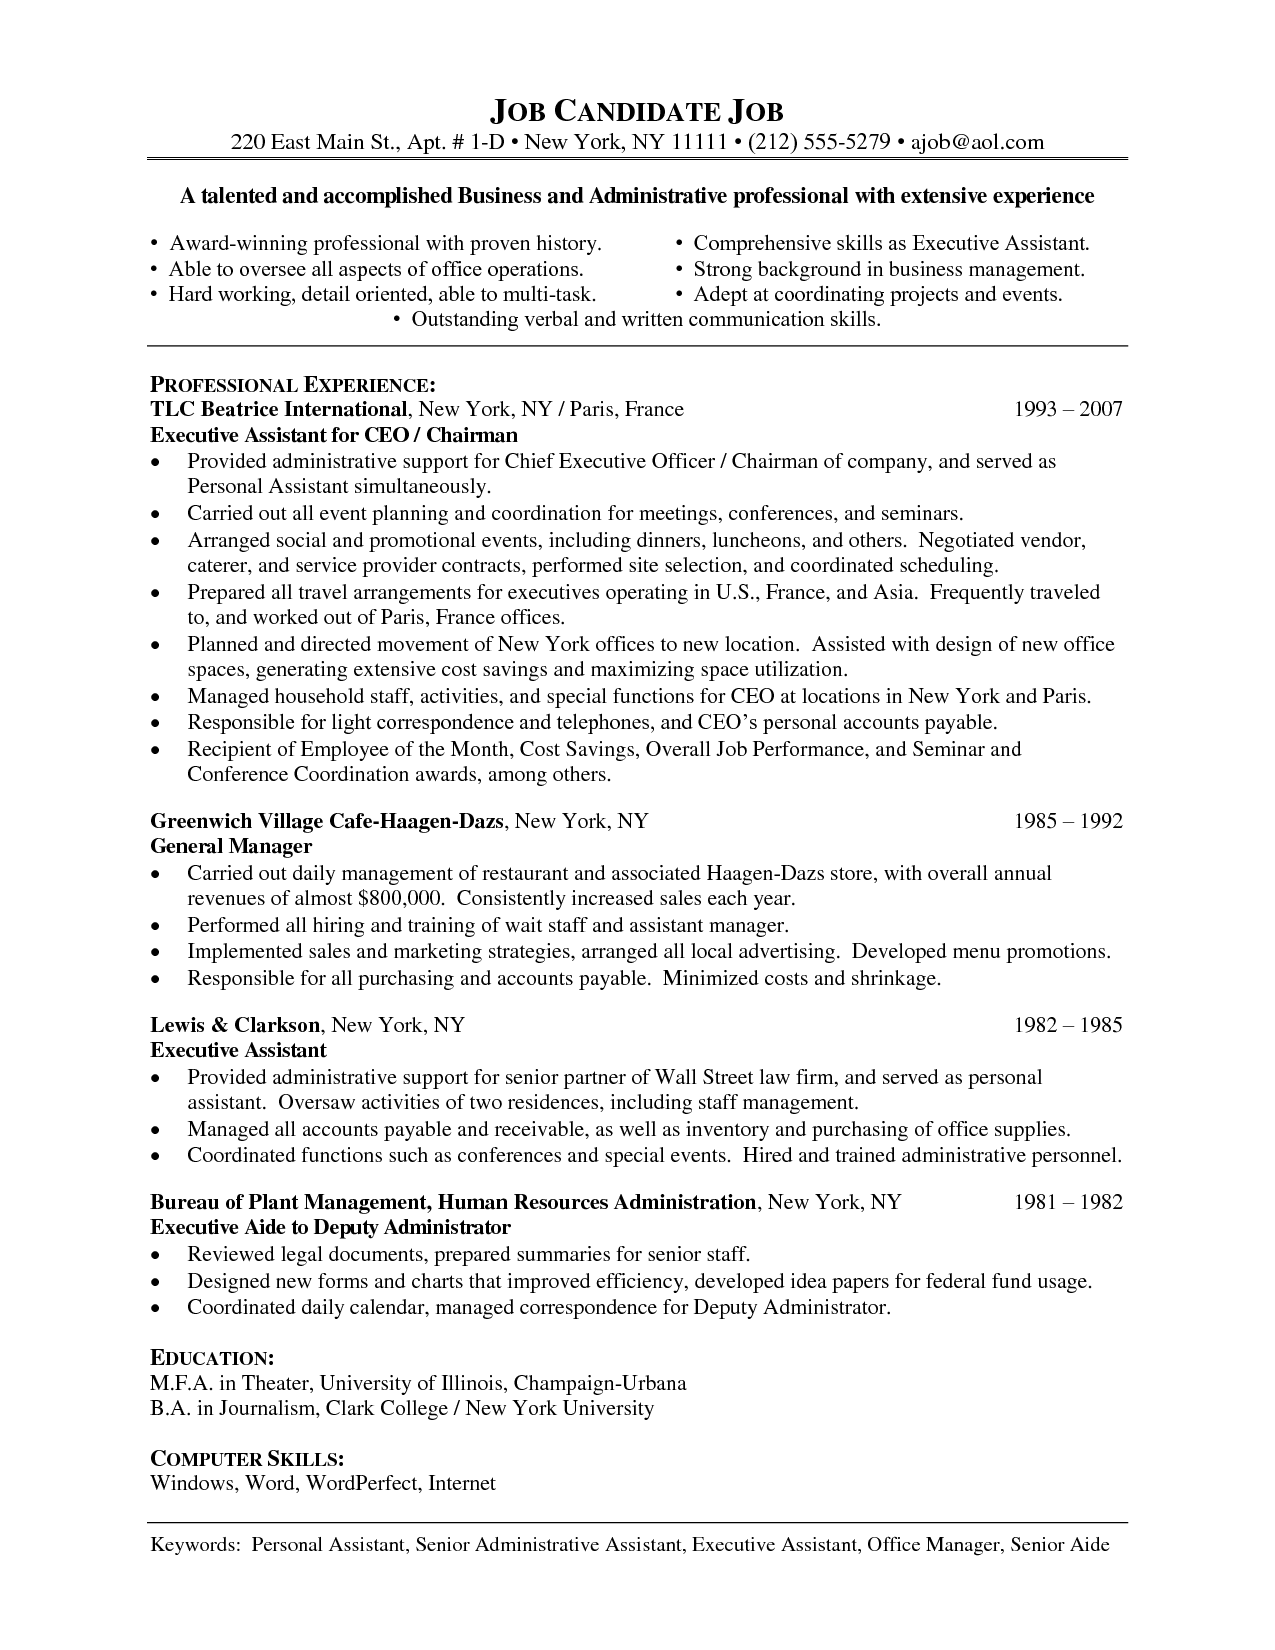 Purchasing Assistant Resume Functional Resume Template For Administrative  Assistant Word S .  Senior Executive Assistant Resume